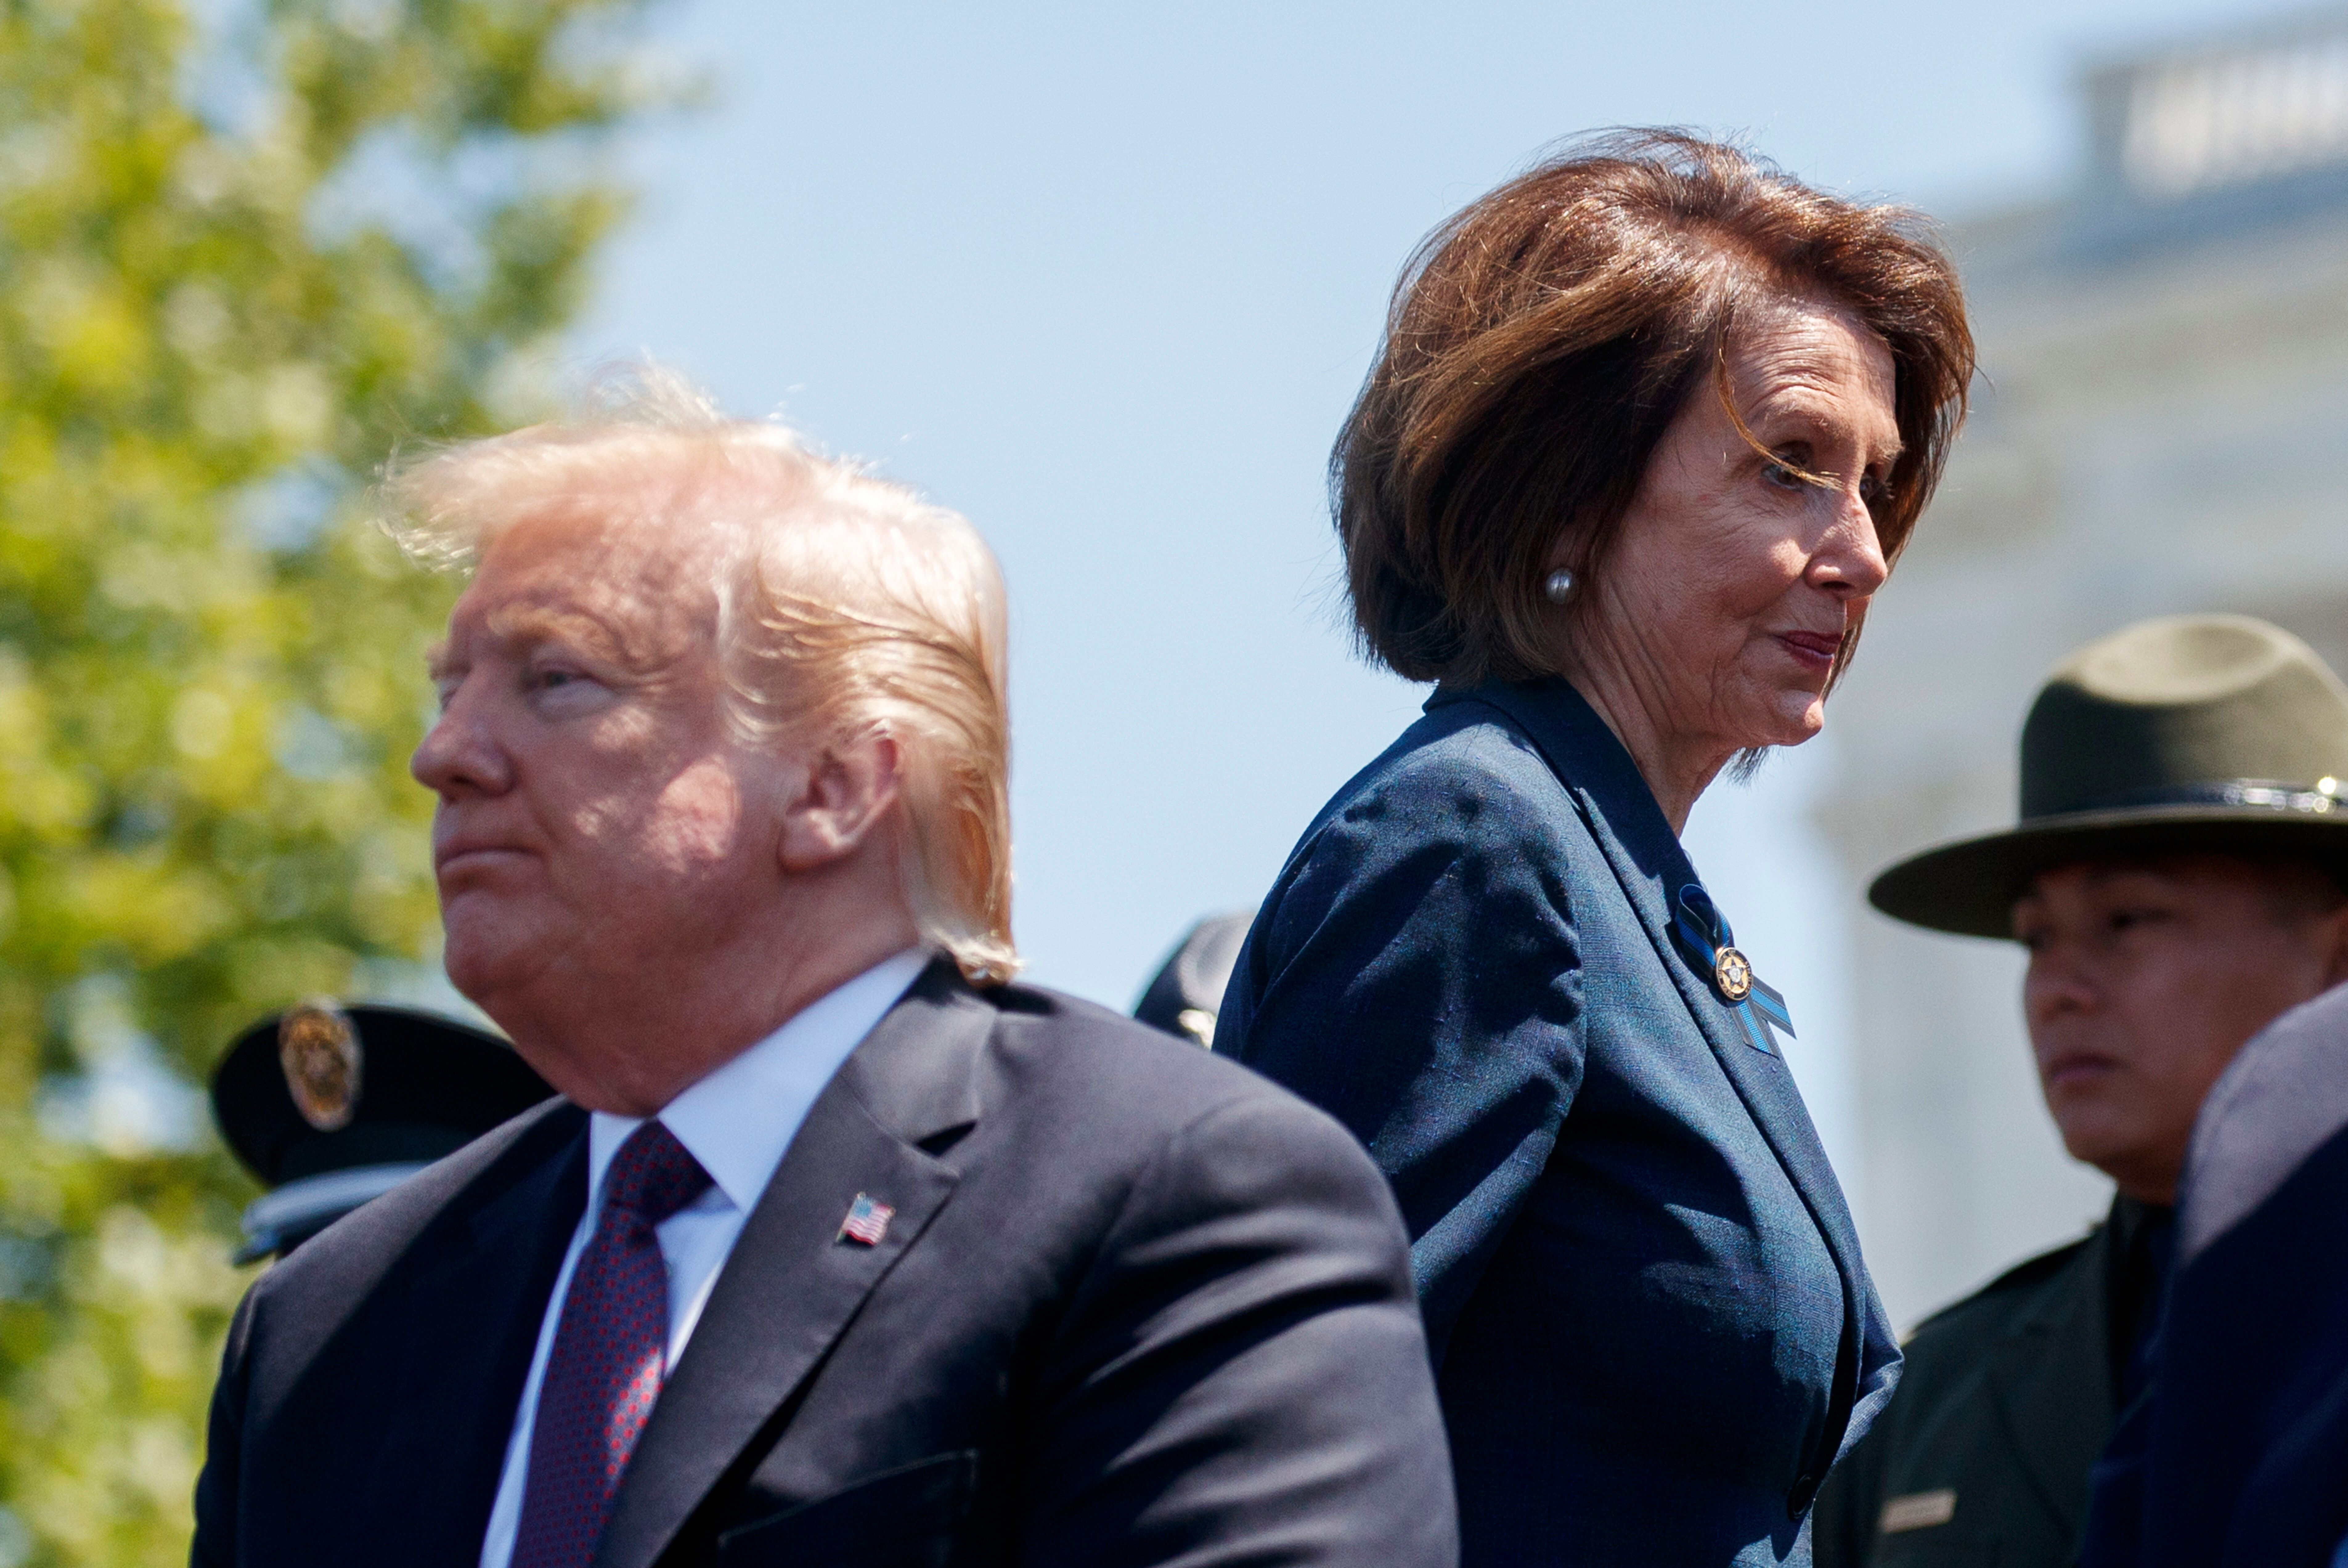 """President Donald Trump and Speaker of the House Nancy Pelosi of Calif., attend the 38th Annual National Peace Officers' Memorial Service at the U.S. Capitol, Wednesday, May 15, 2019, in Washington. Pelosi said Wednesday that the U.S. must avoid war with Iran and she warned the White House has """"no business"""" moving toward a Middle East confrontation without approval from Congress.  (AP Photo/Evan Vucci)"""